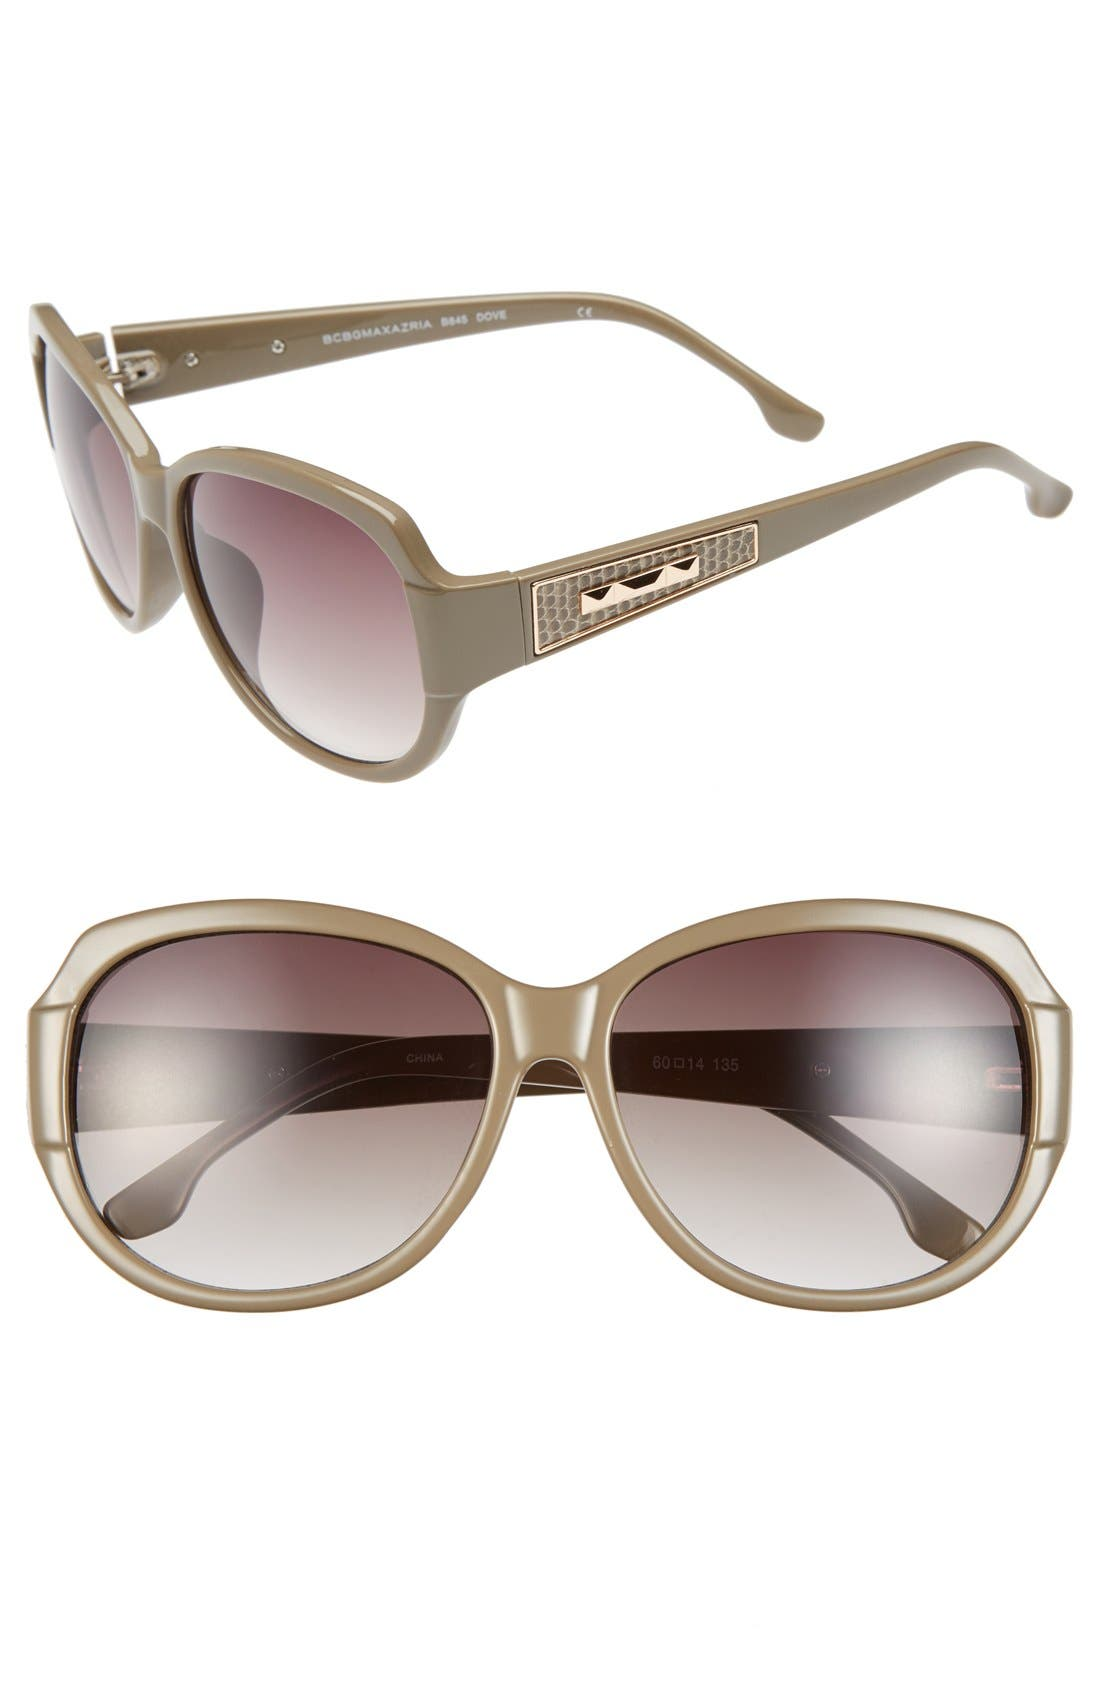 Alternate Image 1 Selected - BCBGMAXAZRIA 60mm Sunglasses